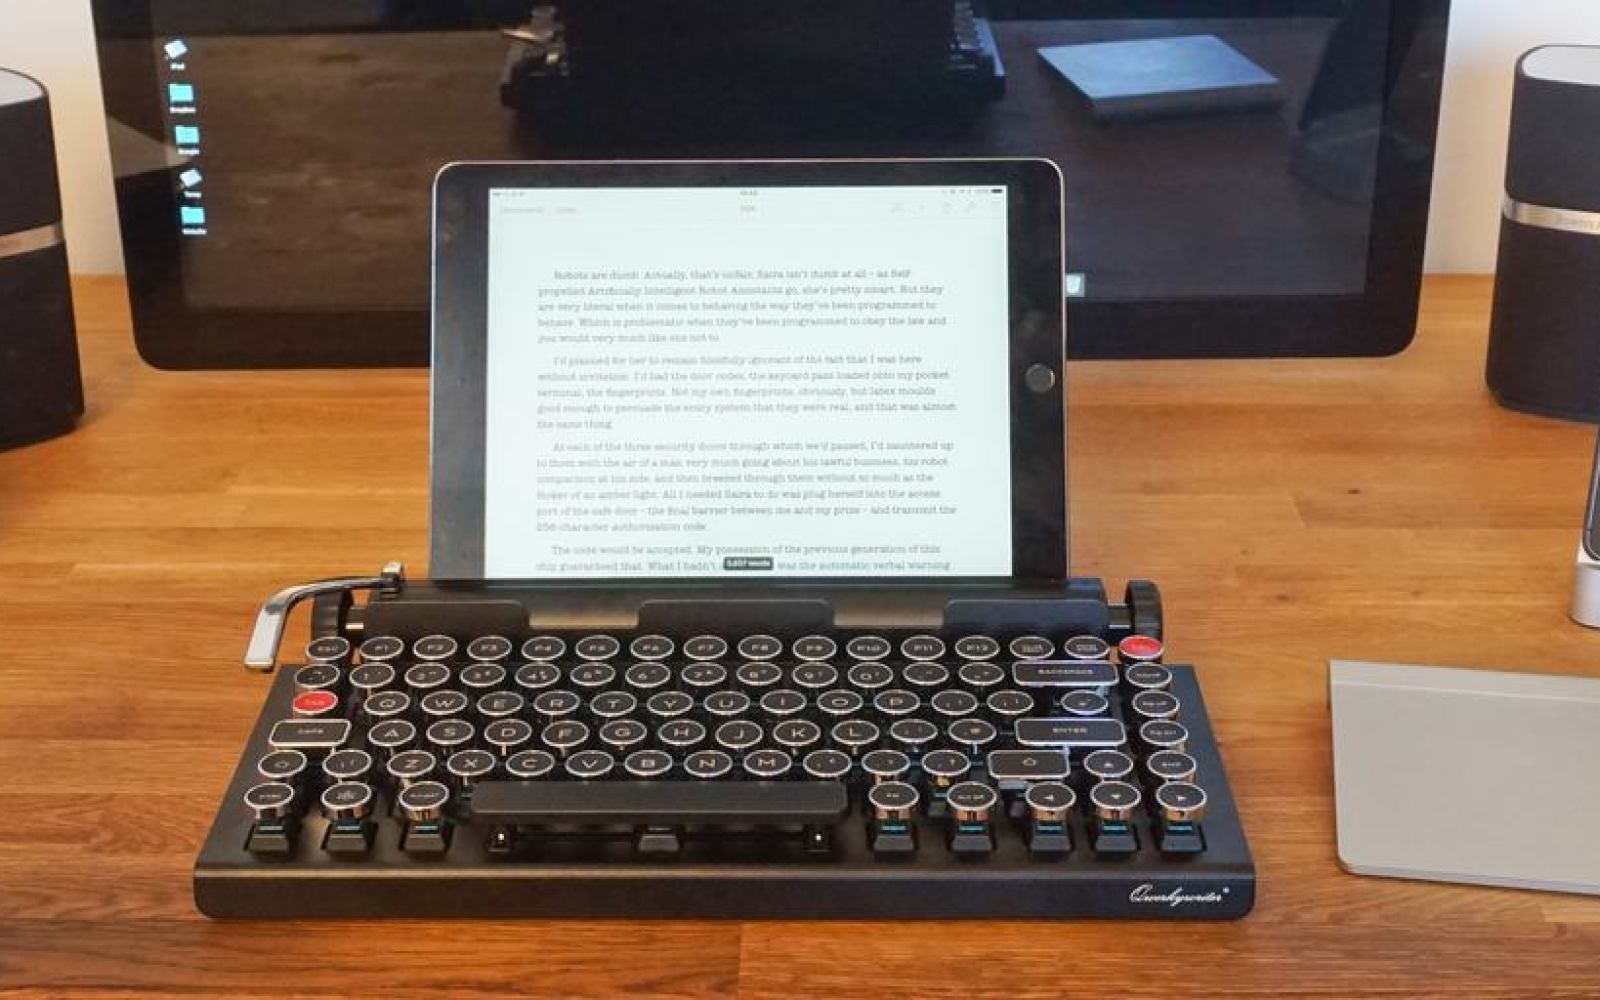 Review: Qwerkywriter, the Bluetooth keyboard that thinks it's a typewriter